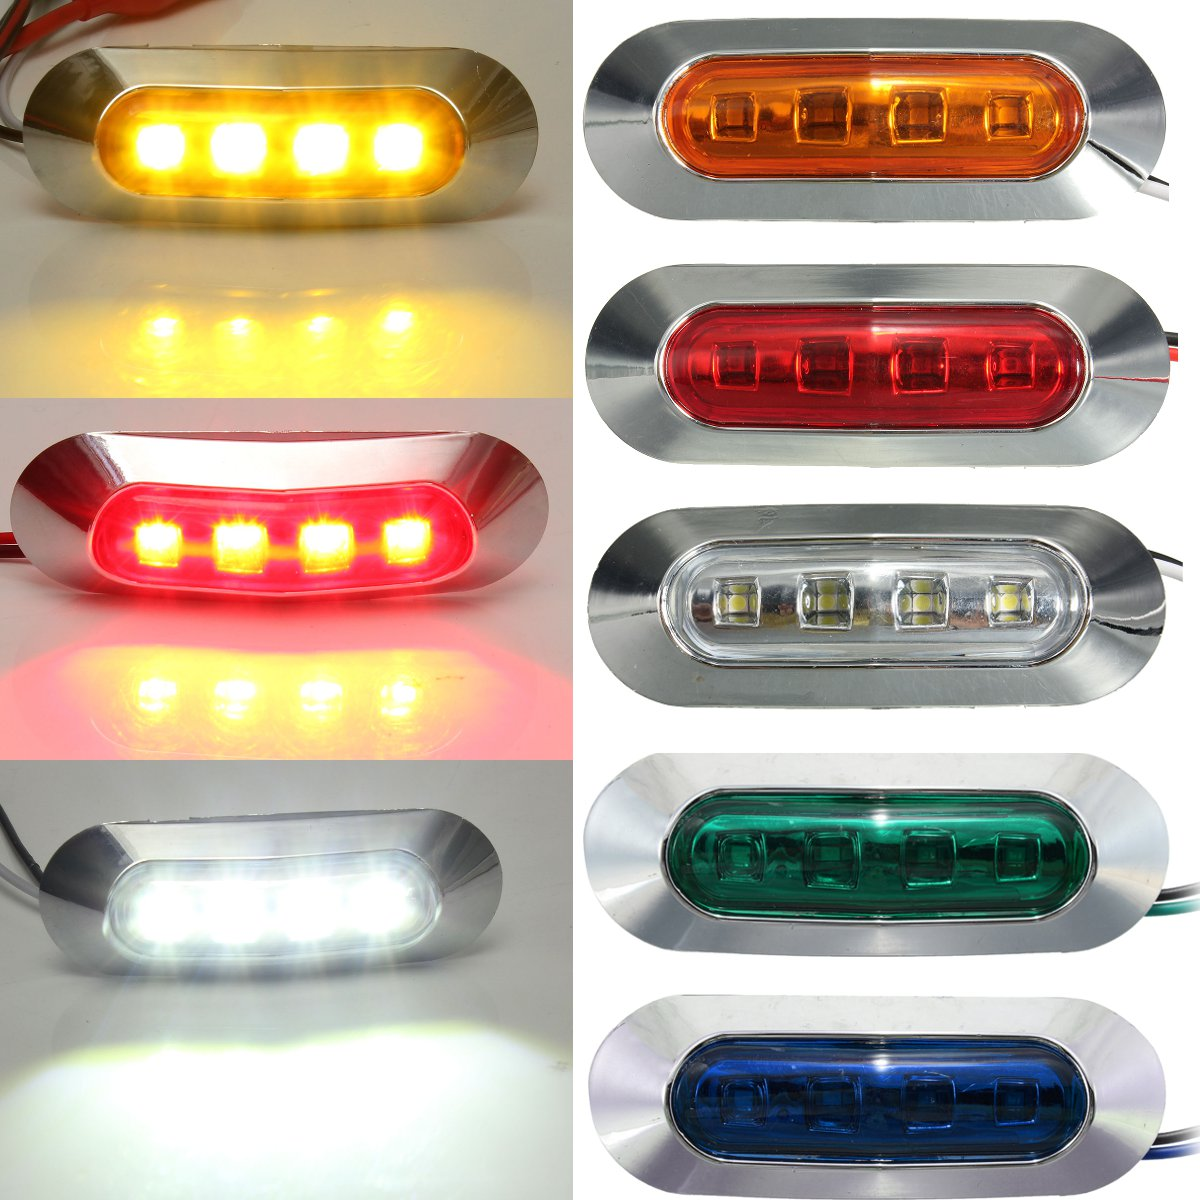 Universal 4LED Marker Parking Light Car Truck Bus Trailer Side Marker Clearance Indicators Light Side Red White Amber Blue Green